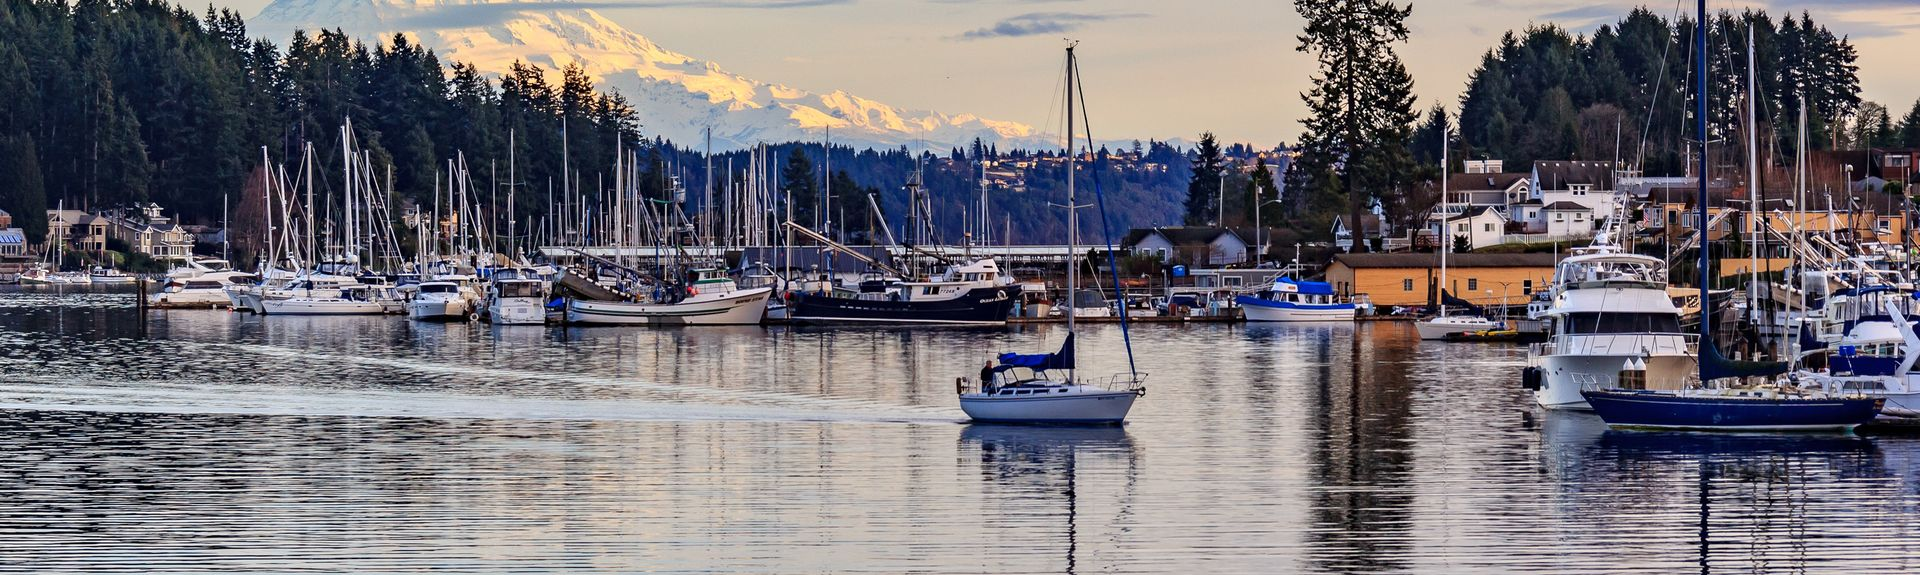 Gig Harbor, Washington, United States of America